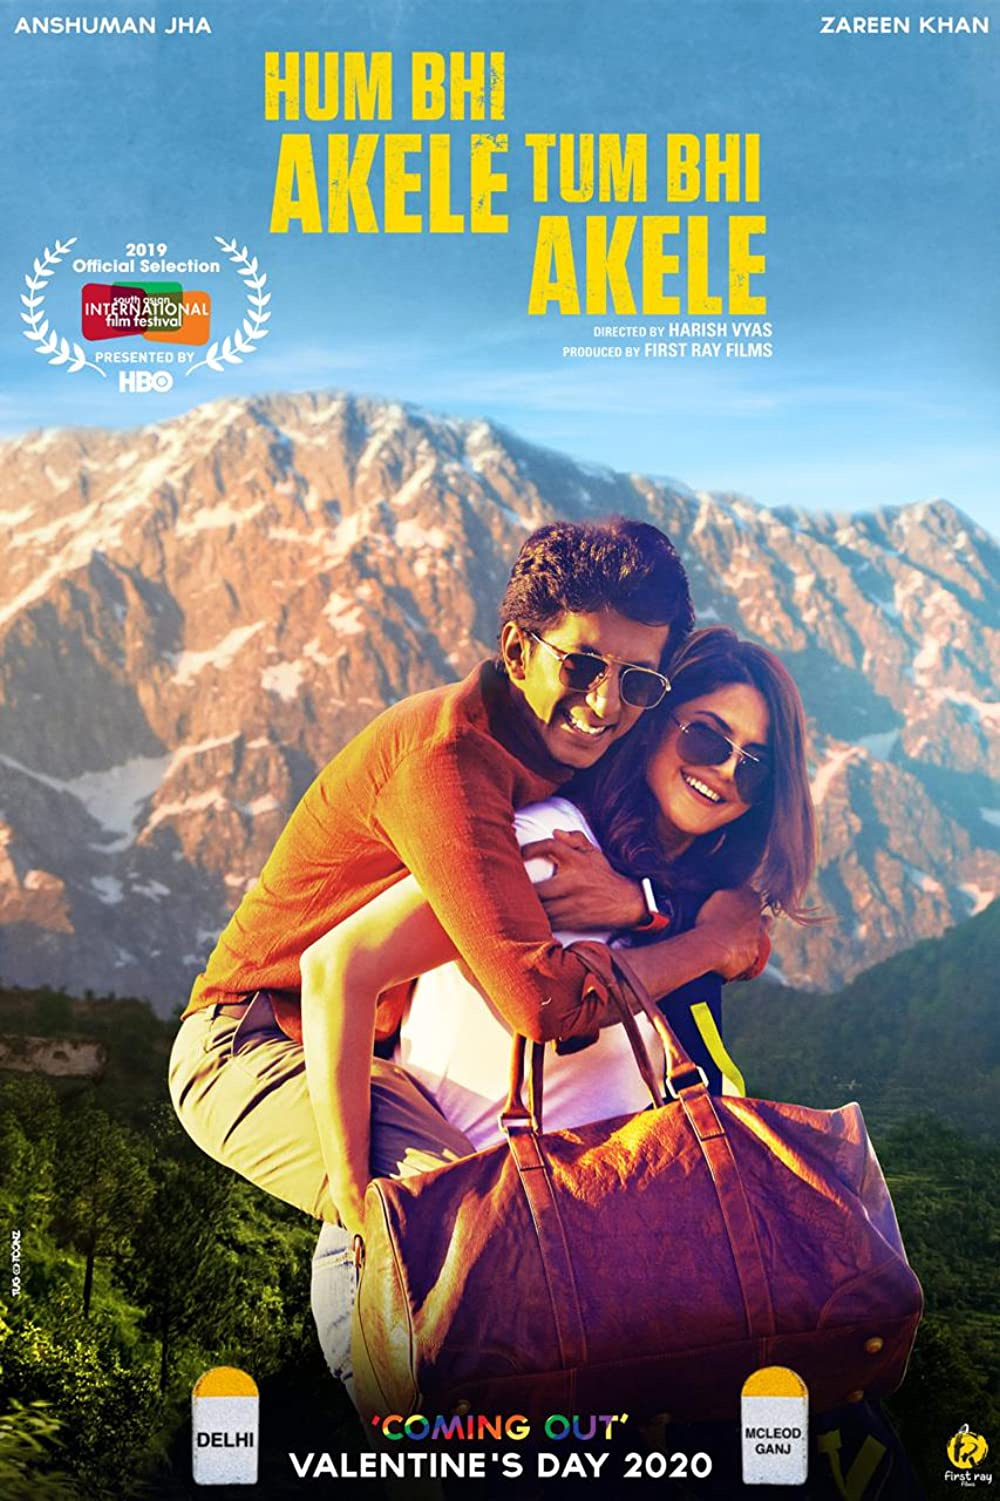 Hum Bhi Akele Tum Bhi Akele 2021 Hindi 402MB HDRip ESub Download